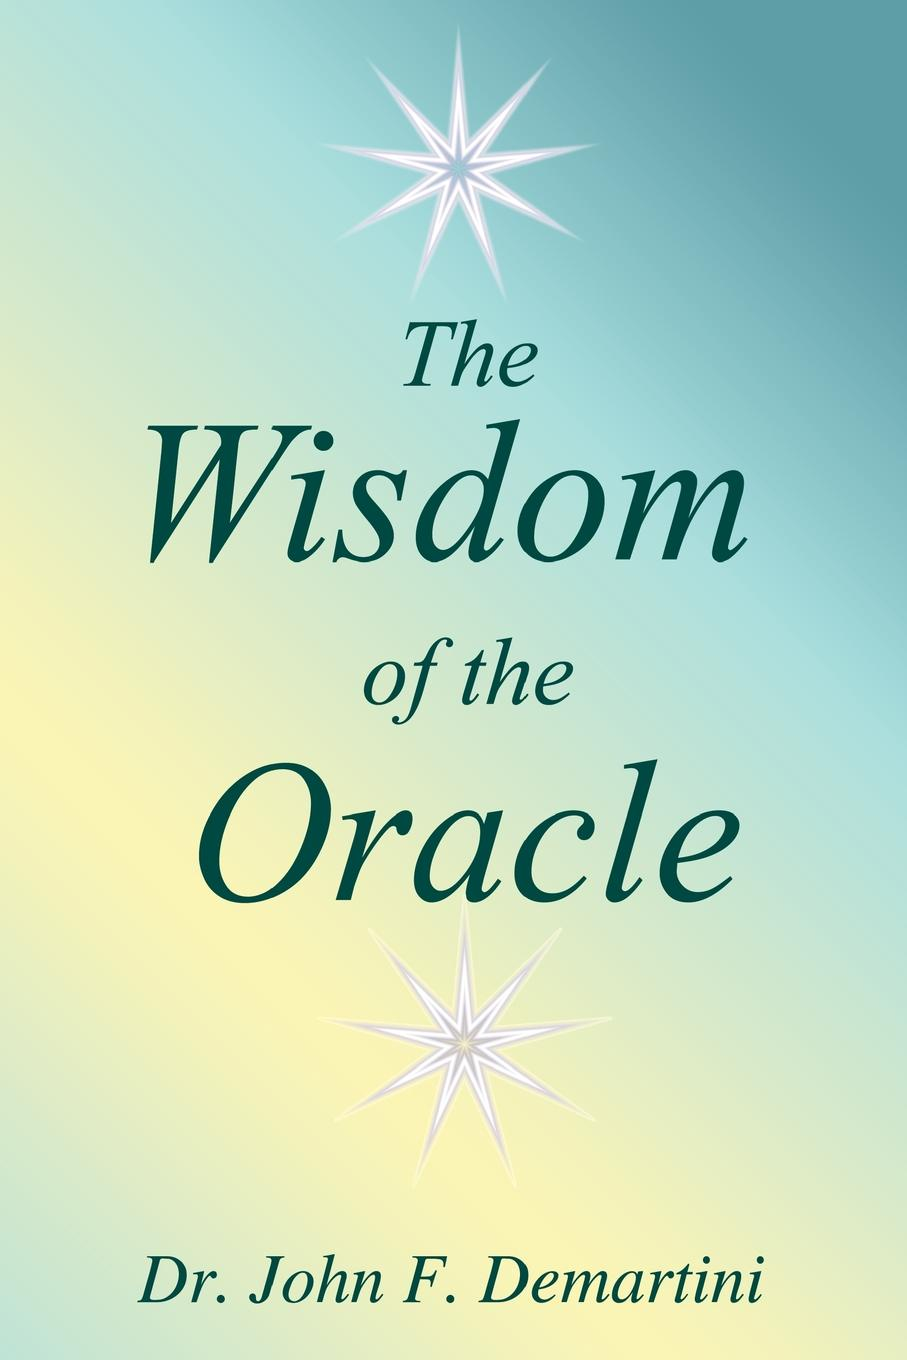 John F. Demartini The Wisdom of the Oracle. Inspiring Messages of the Soul the wisdom of unicorns